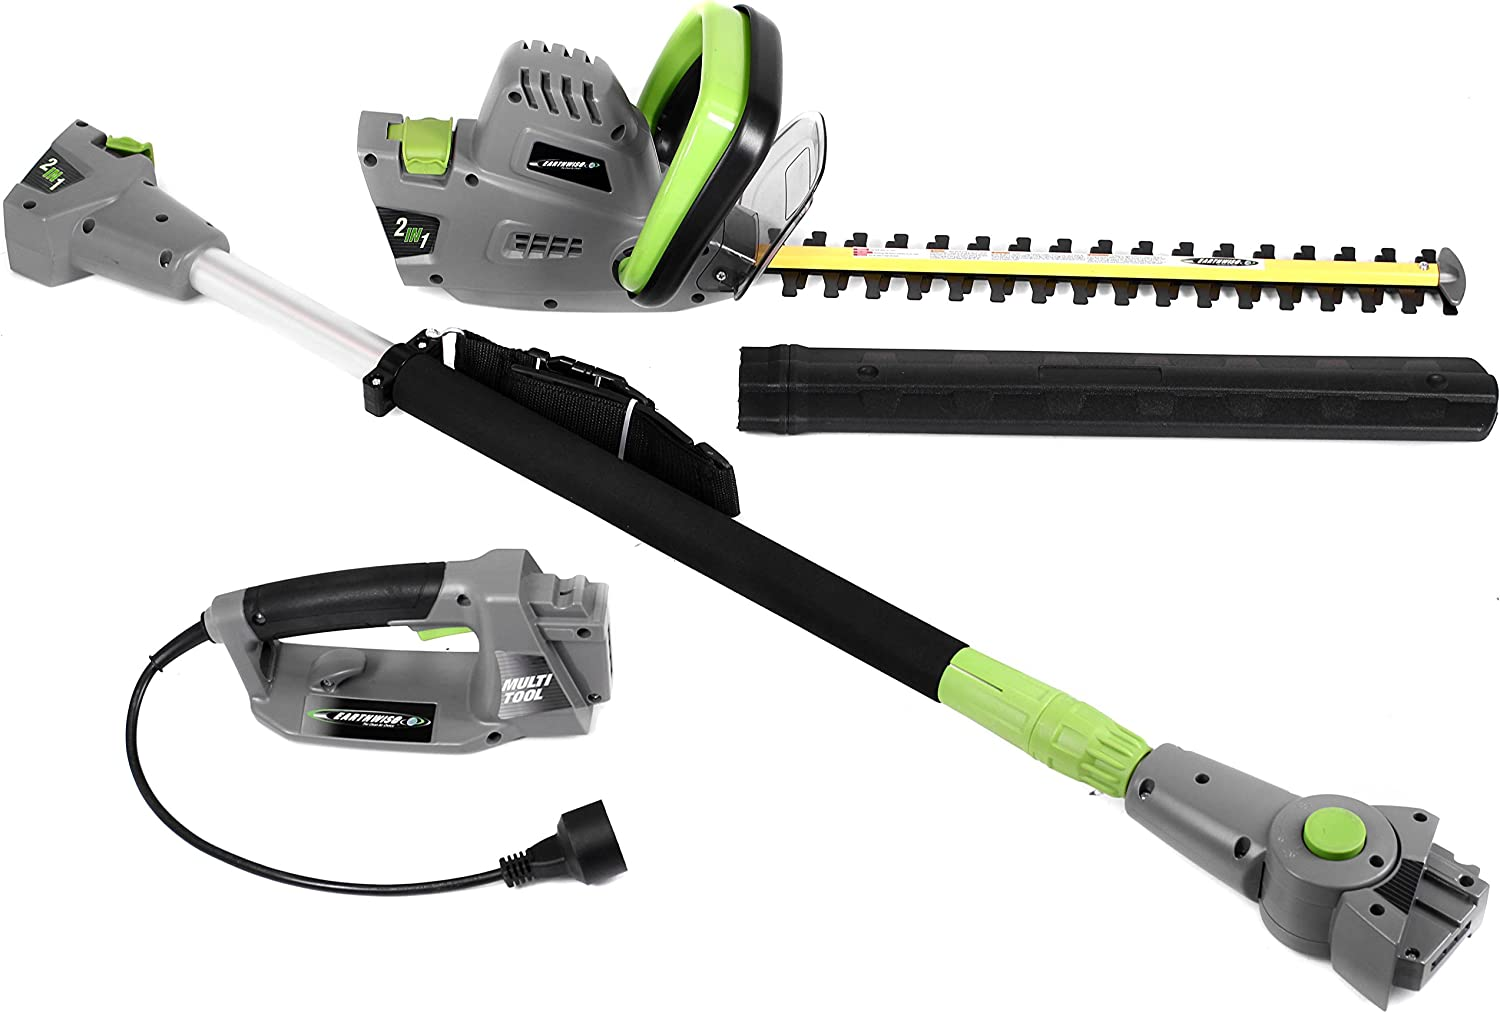 3. Earthwise CVPH43018 Corded Pole Hedge Trimmer